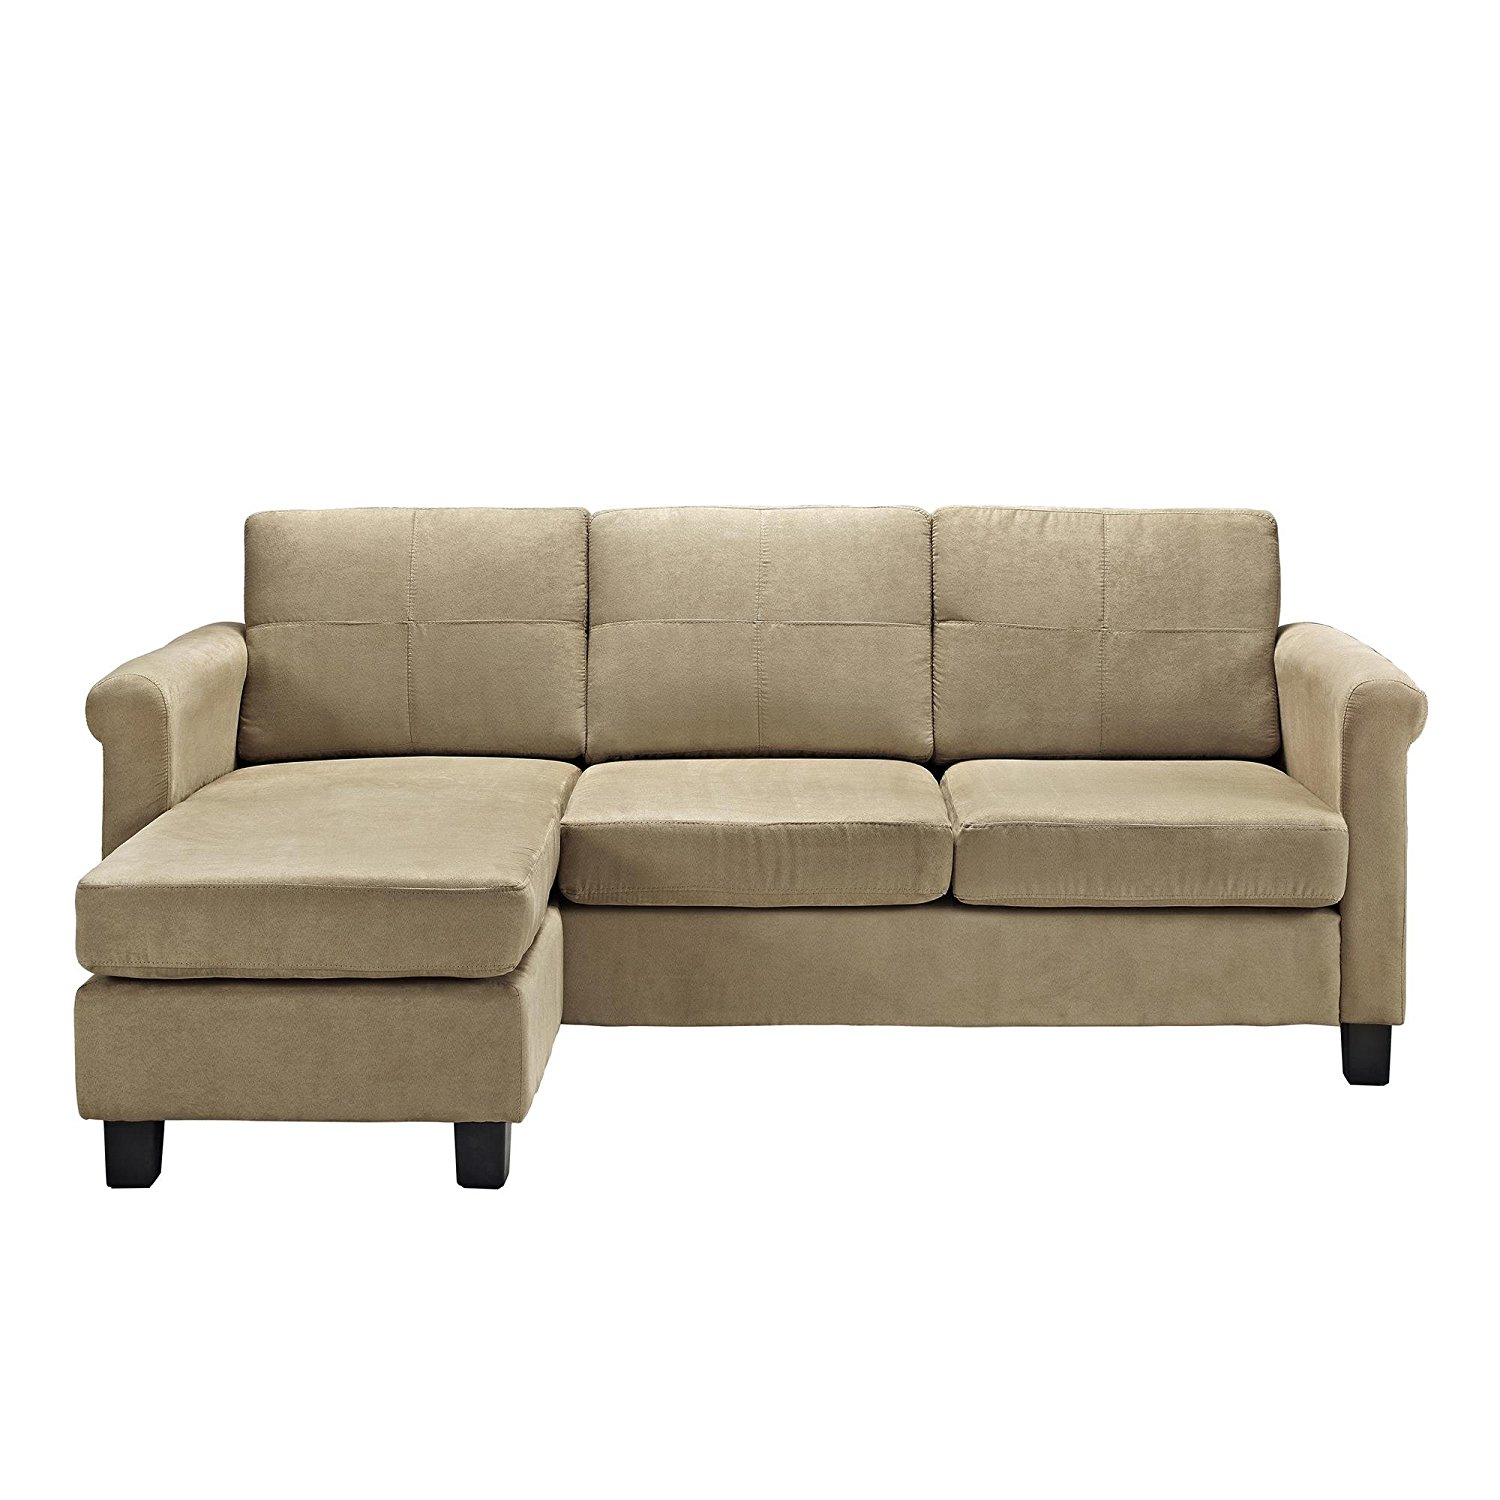 Configurable Sectional Sofa Taupe Discount Furniture Warehouse